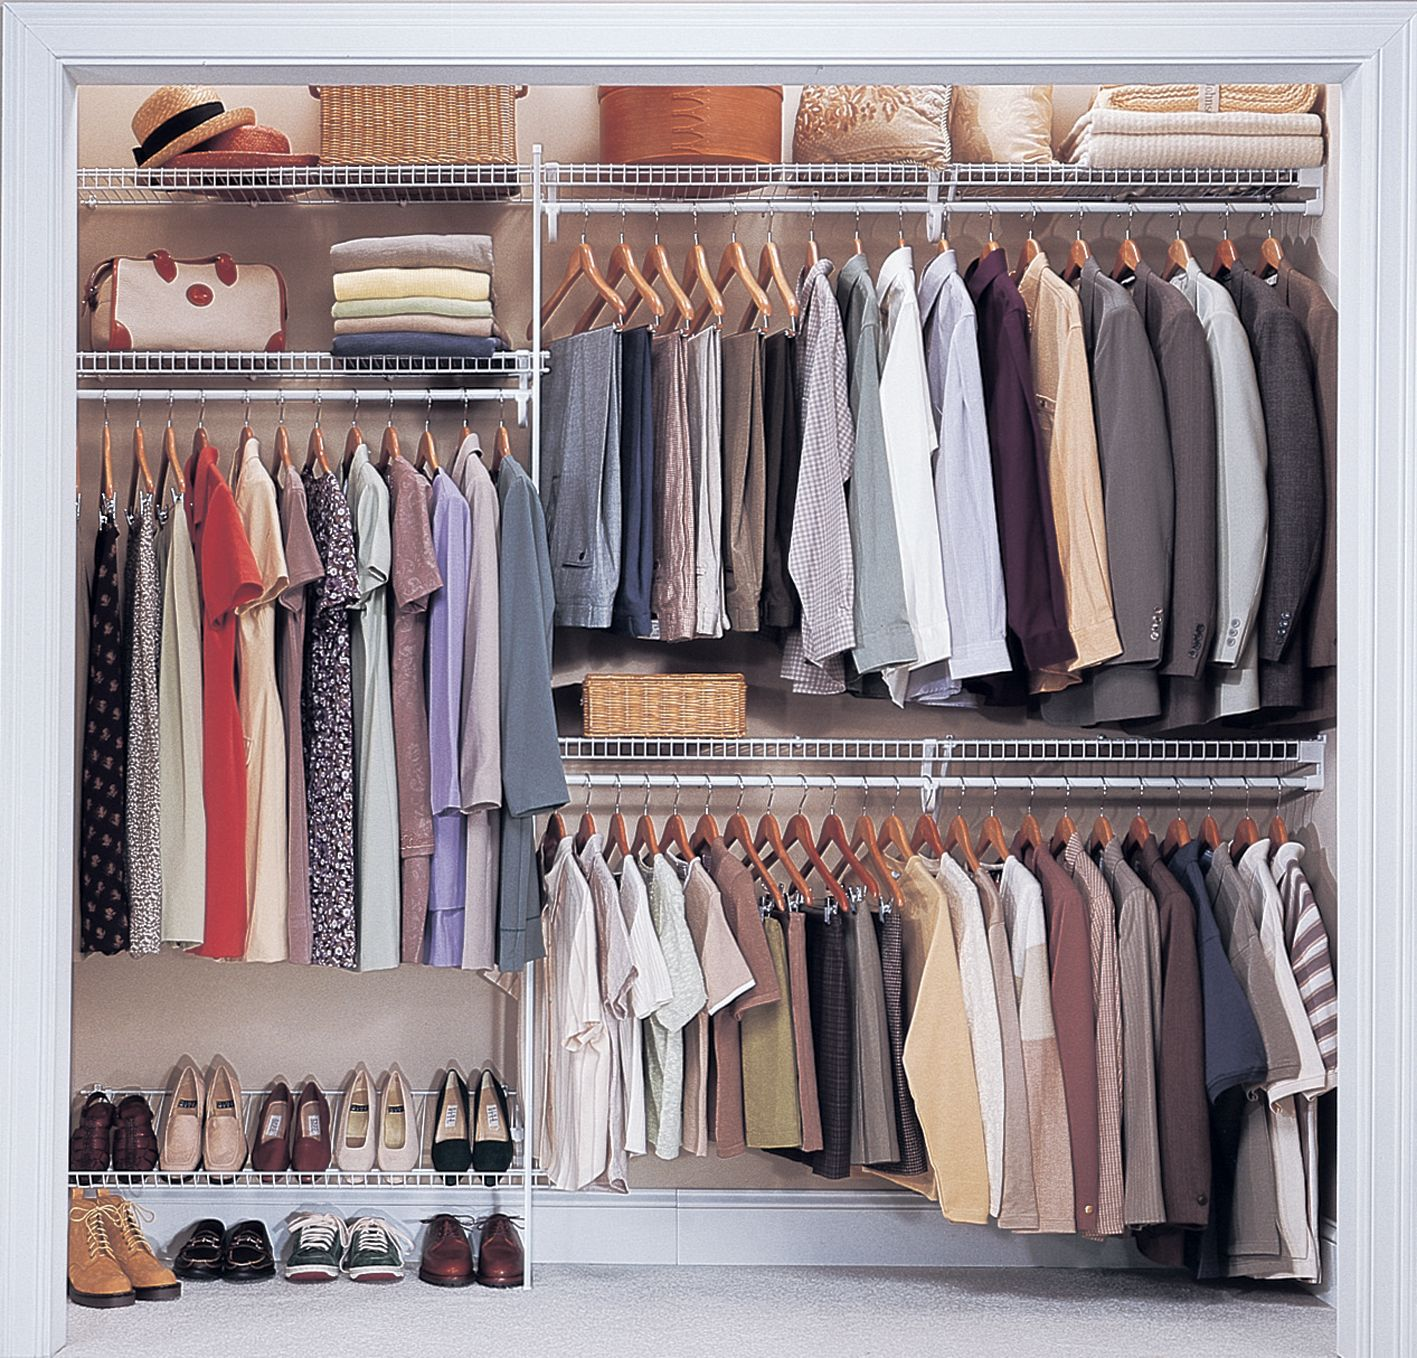 Reach In Closet Design Ideas reach in closets Reach In Closet Ideas Google Search